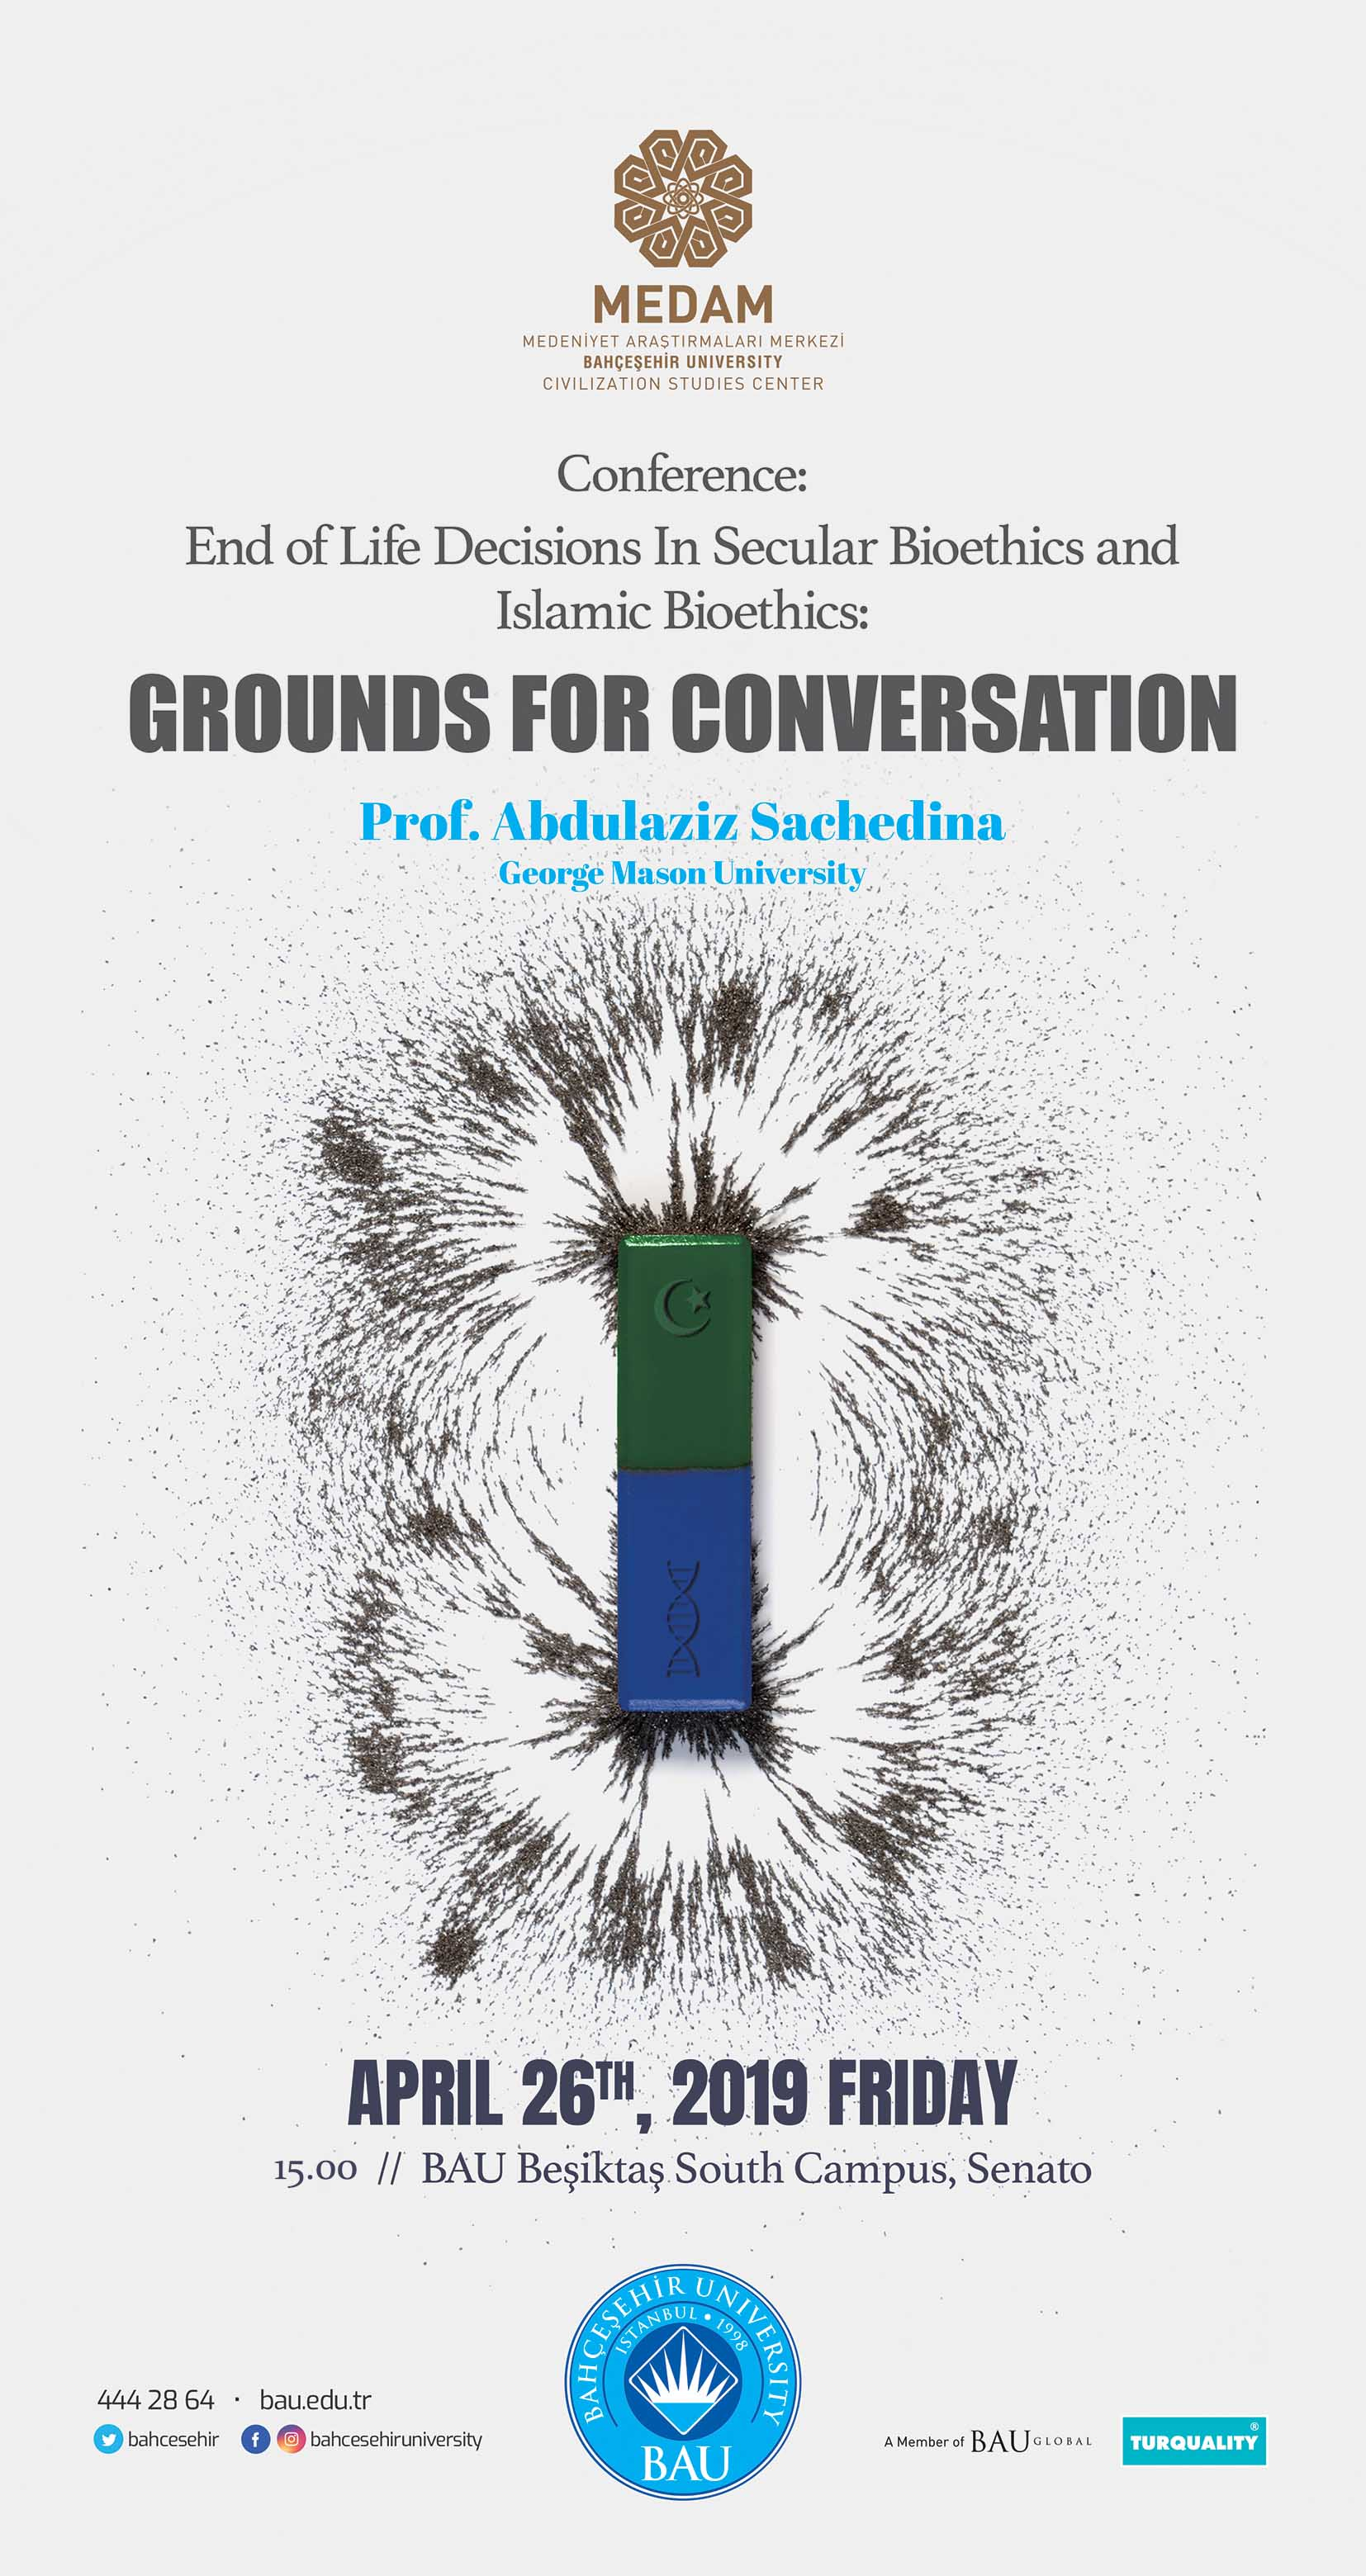 Conference: End of Life Decisions In Secular Bioethics and Islamic Bioethics: GROUNDS FOR CONVERSATION